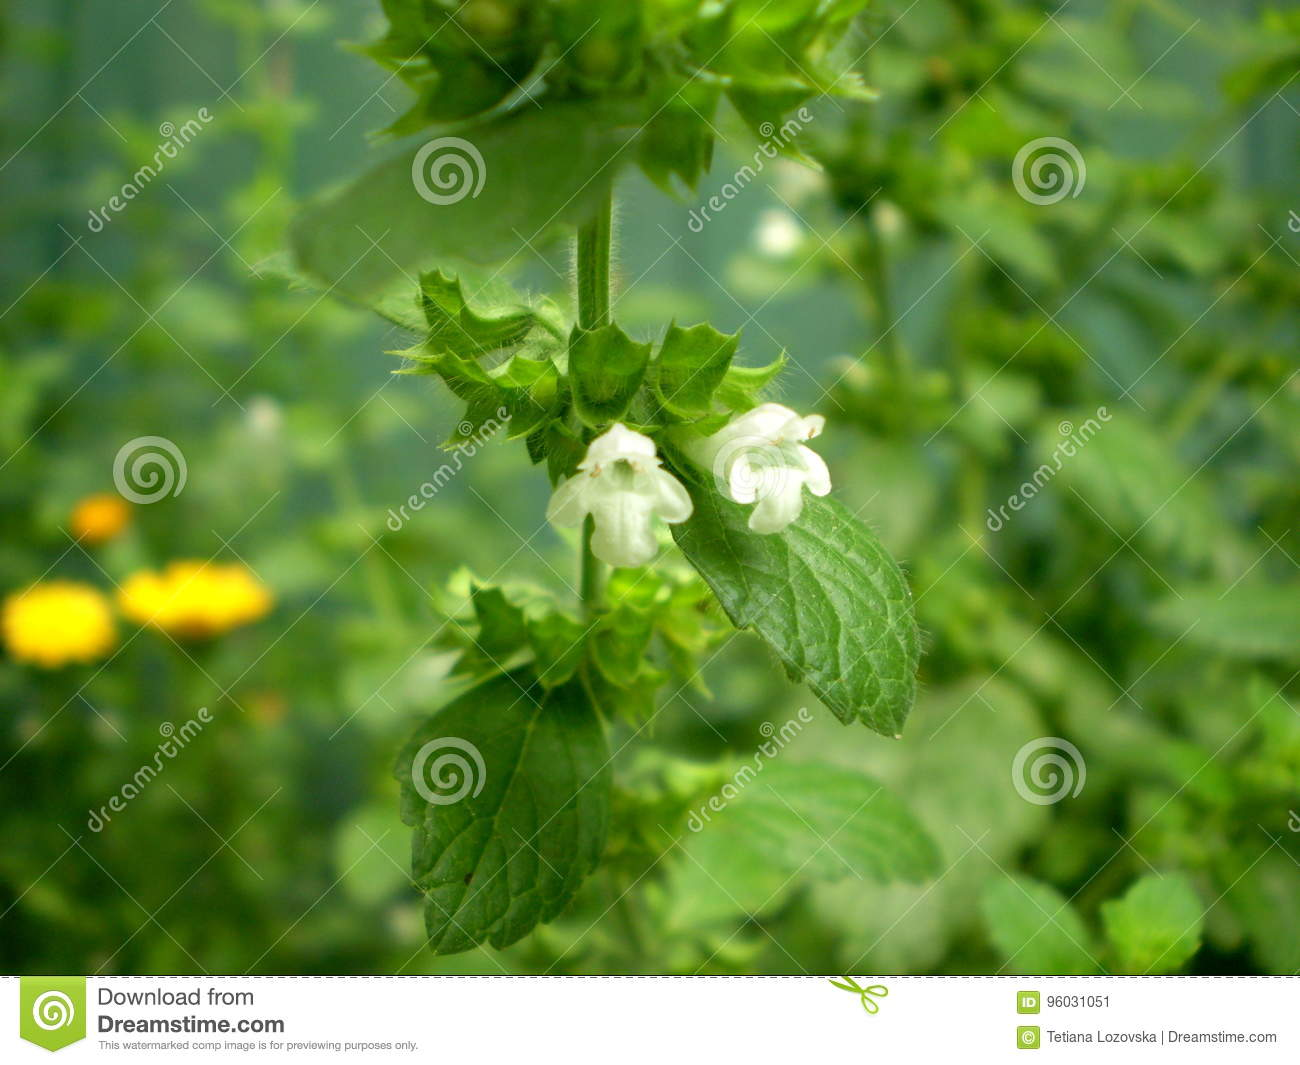 Photography Of White Flowers On Blurred Green Background Stock Image